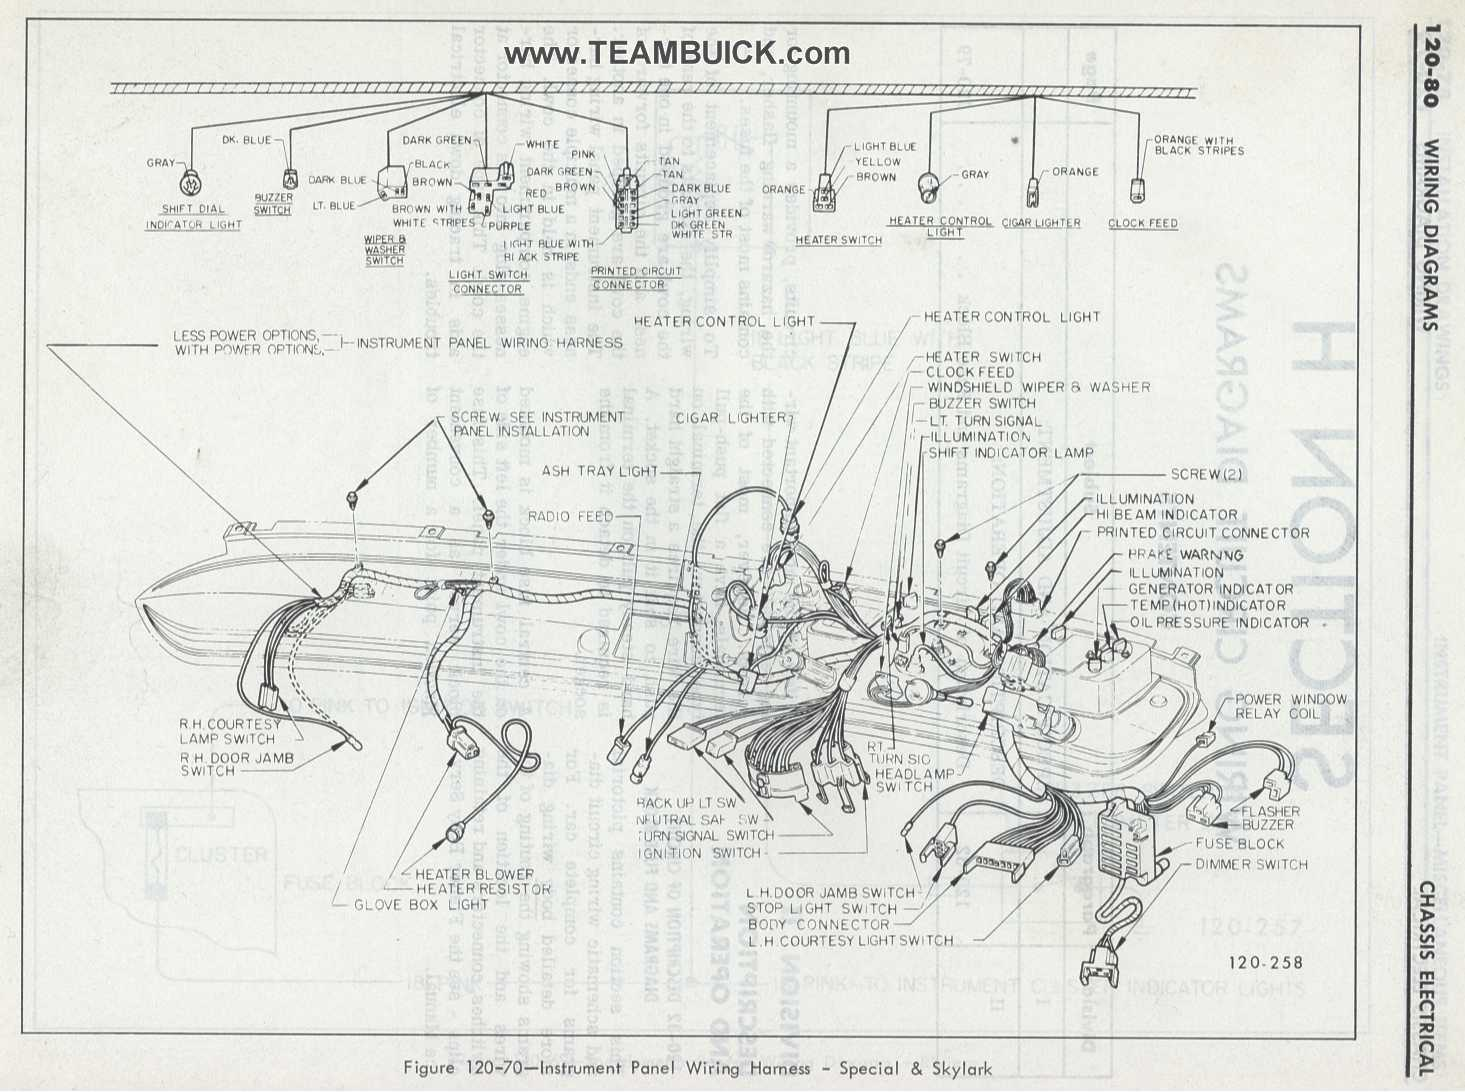 1967 Buick Special Wiring Diagram Wire Data Schema Schematics And Skylark Instrument Panel Harness Rh Teambuick Com Century 1996 Regal Ignition Switch